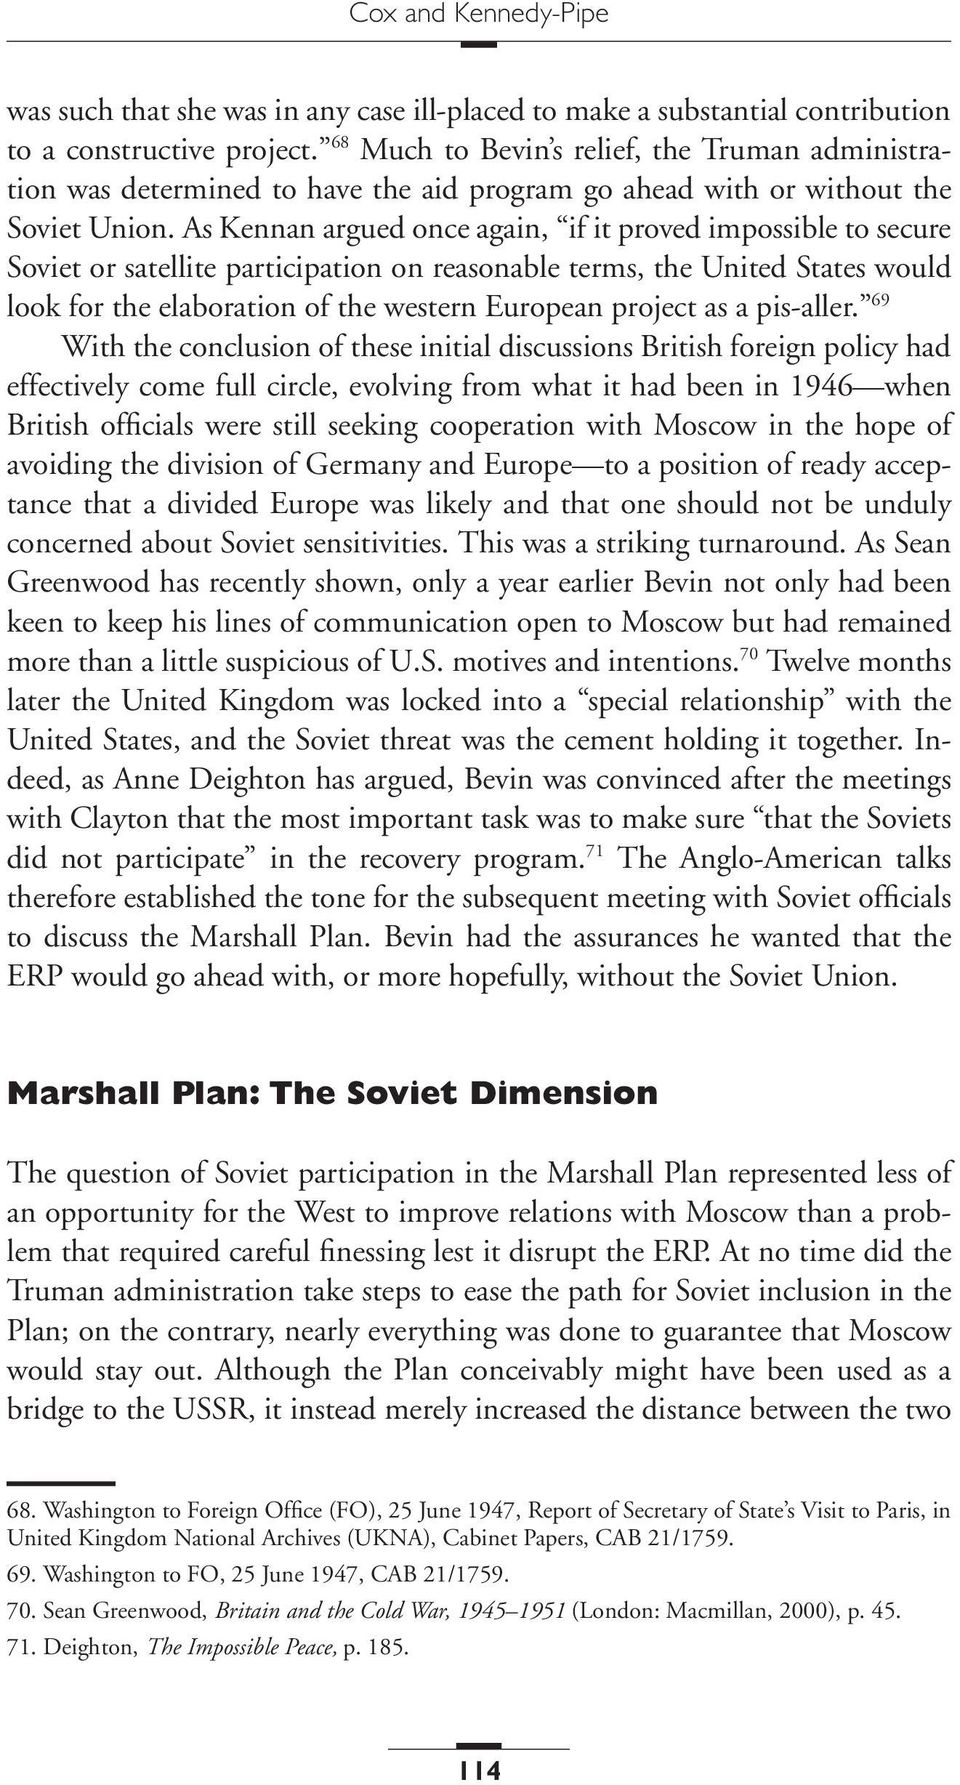 As Kennan argued once again, if it proved impossible to secure Soviet or satellite participation on reasonable terms, the United States would look for the elaboration of the western European project